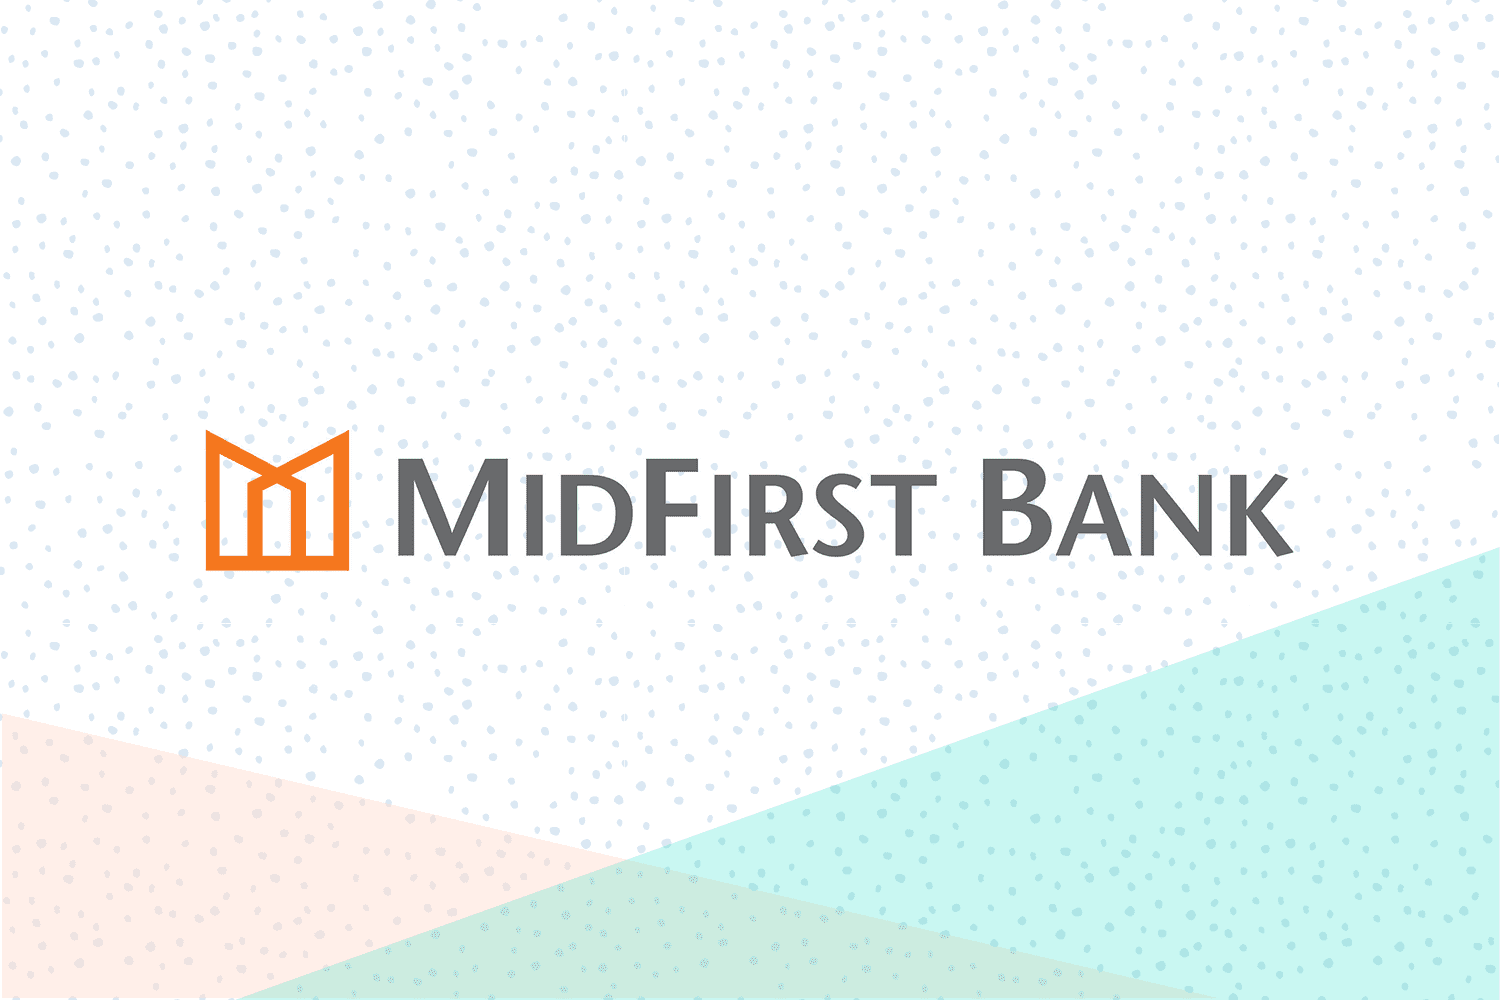 midfirst bank secured credit card